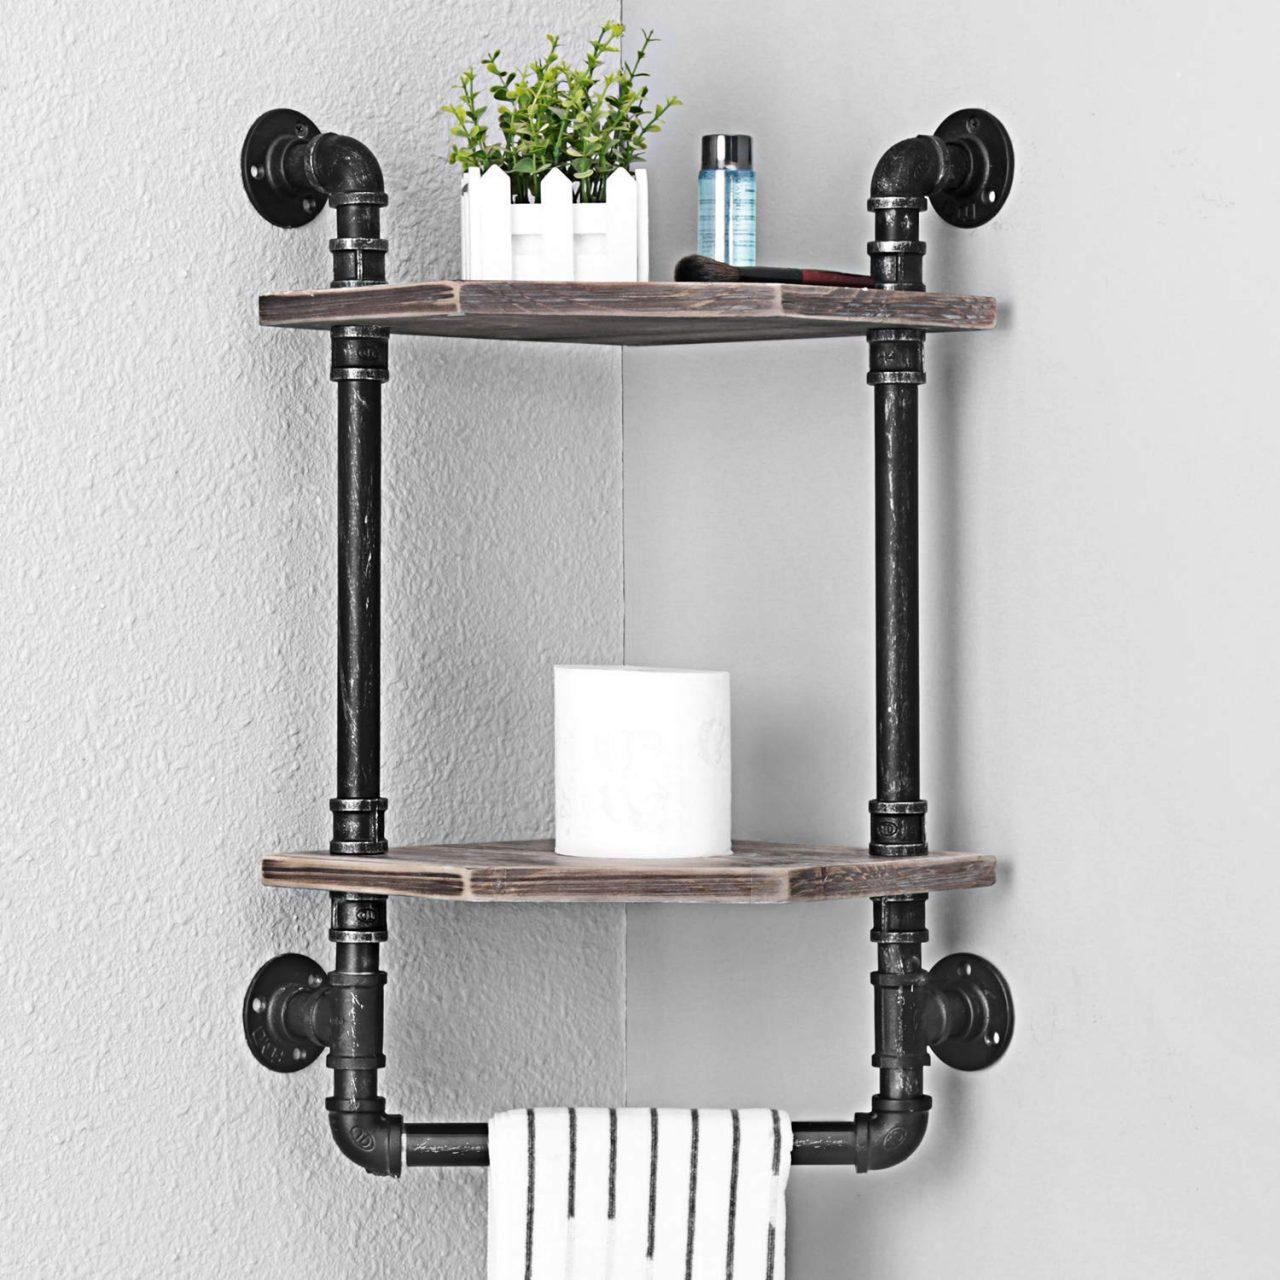 719OUWP1D0L. AC SL1500 - MBQQ Rustic Corner Shelves with Towel Bar Wall Mounted, 2 Tiered MBQQ